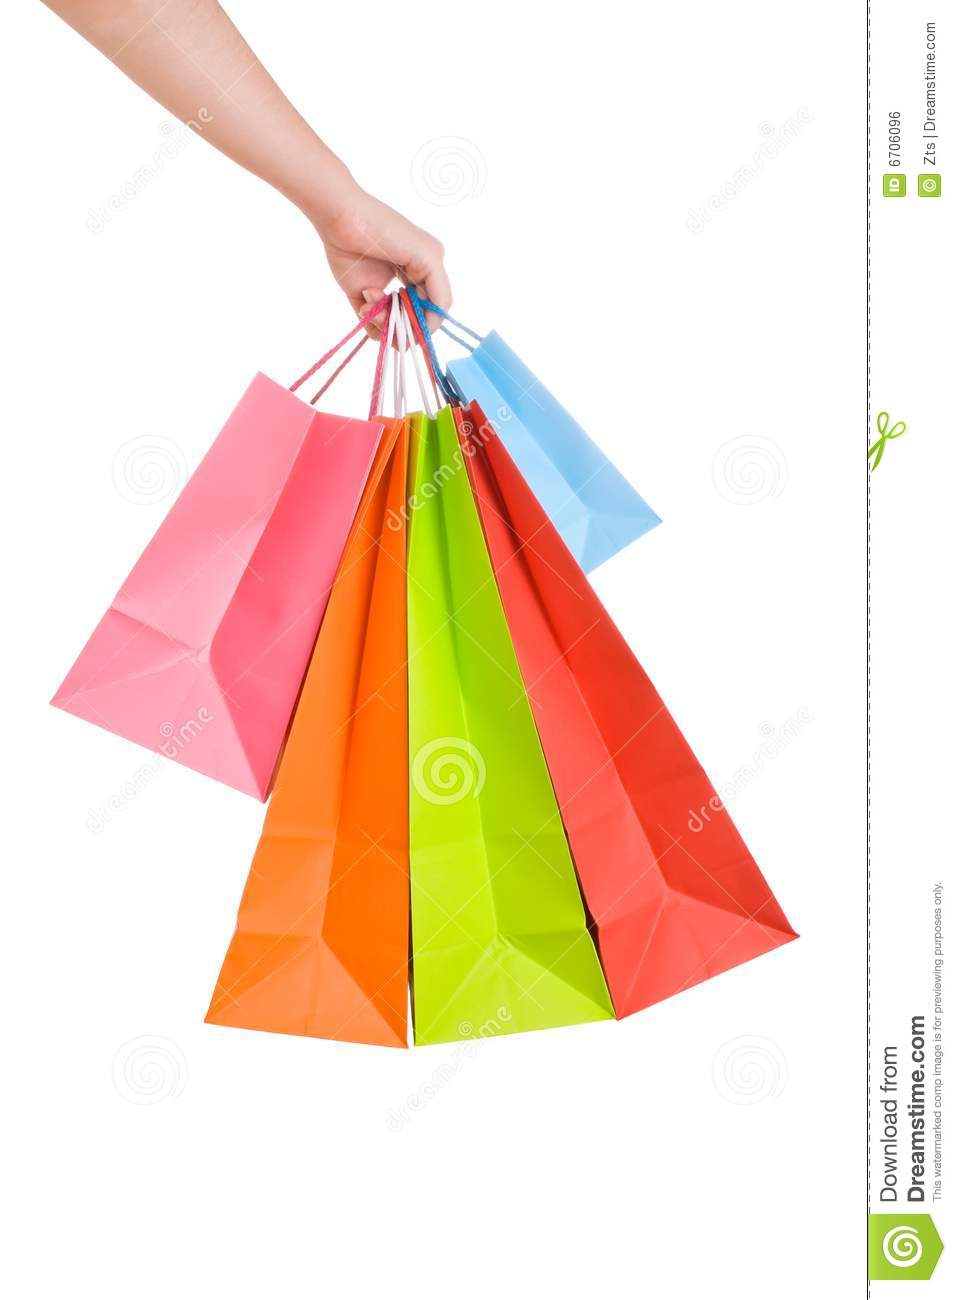 Woman Hand Holding Several Shopping Bags Royalty Free Stock Image ...